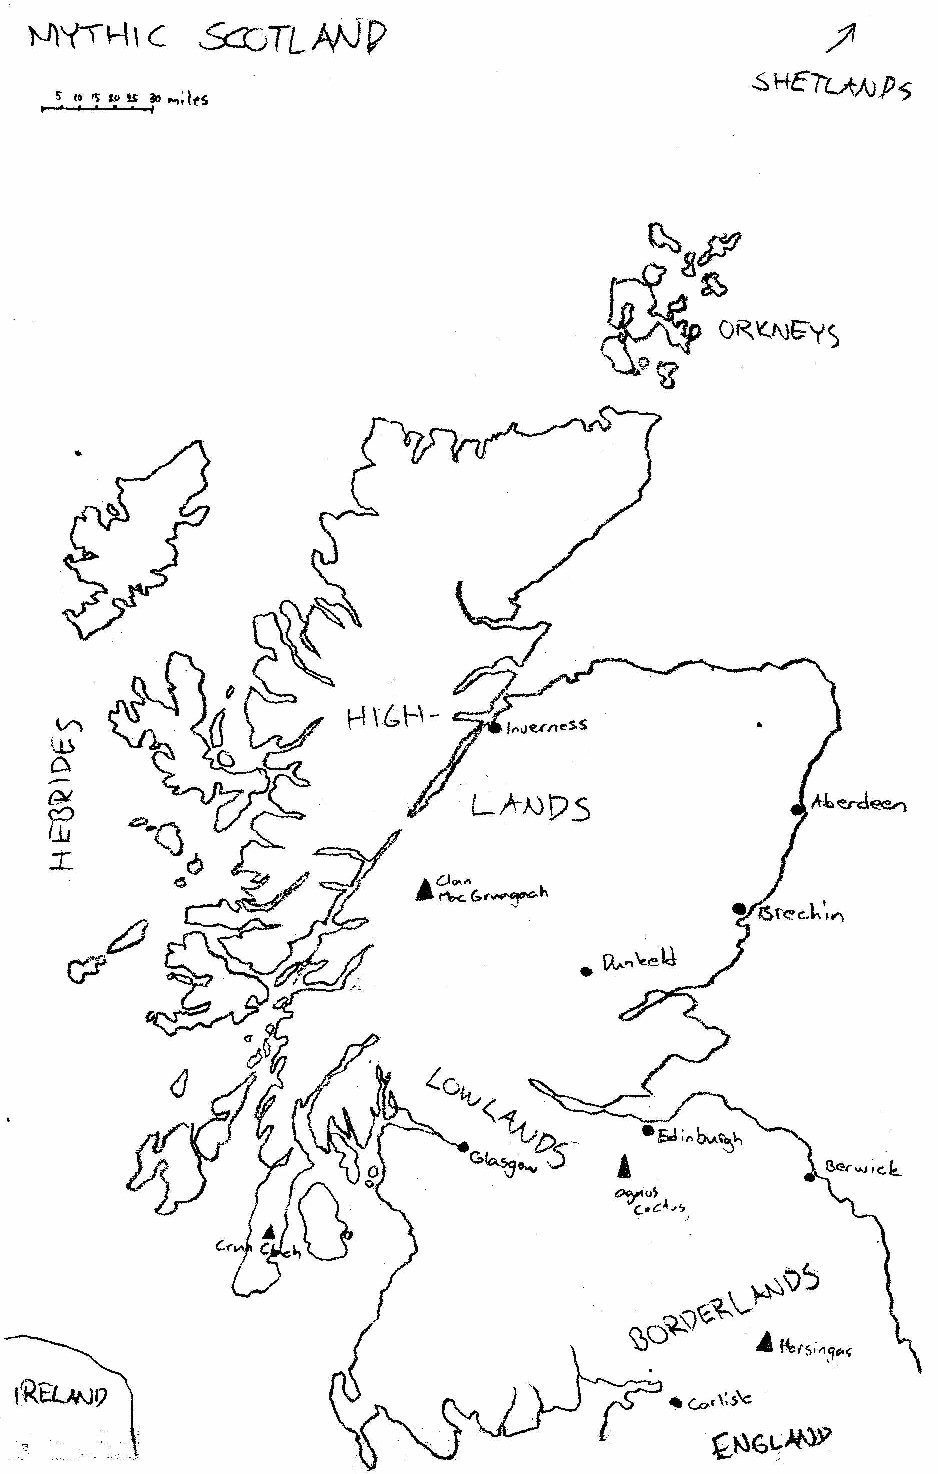 Insula Maledictus - Maps on map of england with towns, map of netherlands cities, scotland towns and cities, map of s korea cities, map scotland scottish highlands, map of western tennessee cities, map of europe with cities, map of mexican riviera cities, map of guyana cities, map of neolithic cities, map of rome cities, map of northern europe cities, map of french riviera cities, map of the carolinas cities, map of france cities, map of palau cities, map of uk cities, map of central mexico cities, map of switzerland cities, map of belgium cities,